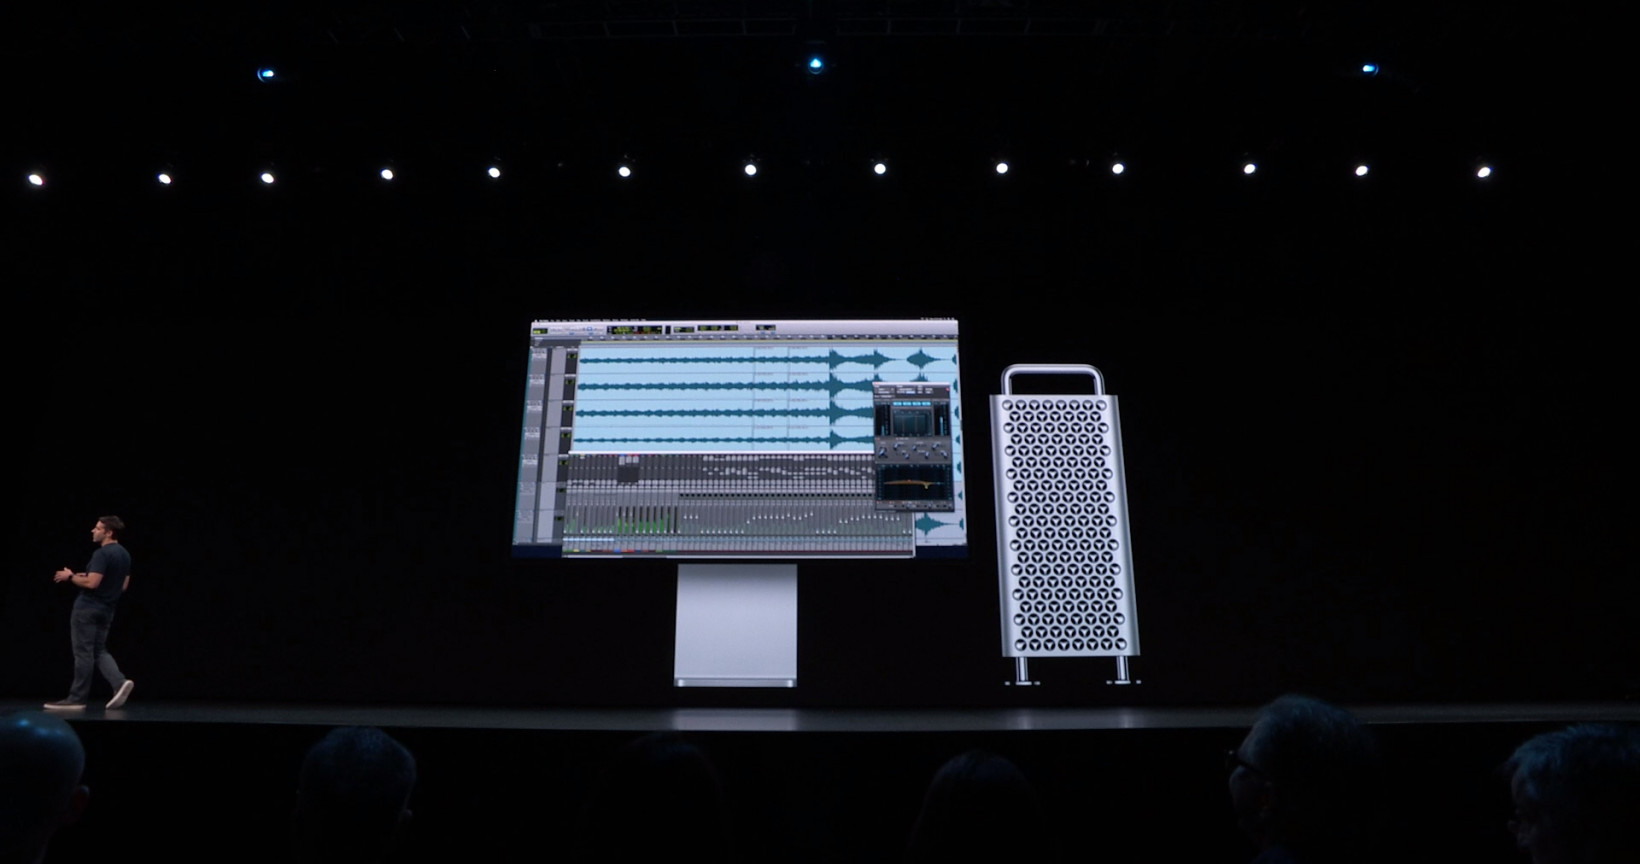 Who's going to spend $53k on a Mac? Seriously, who?